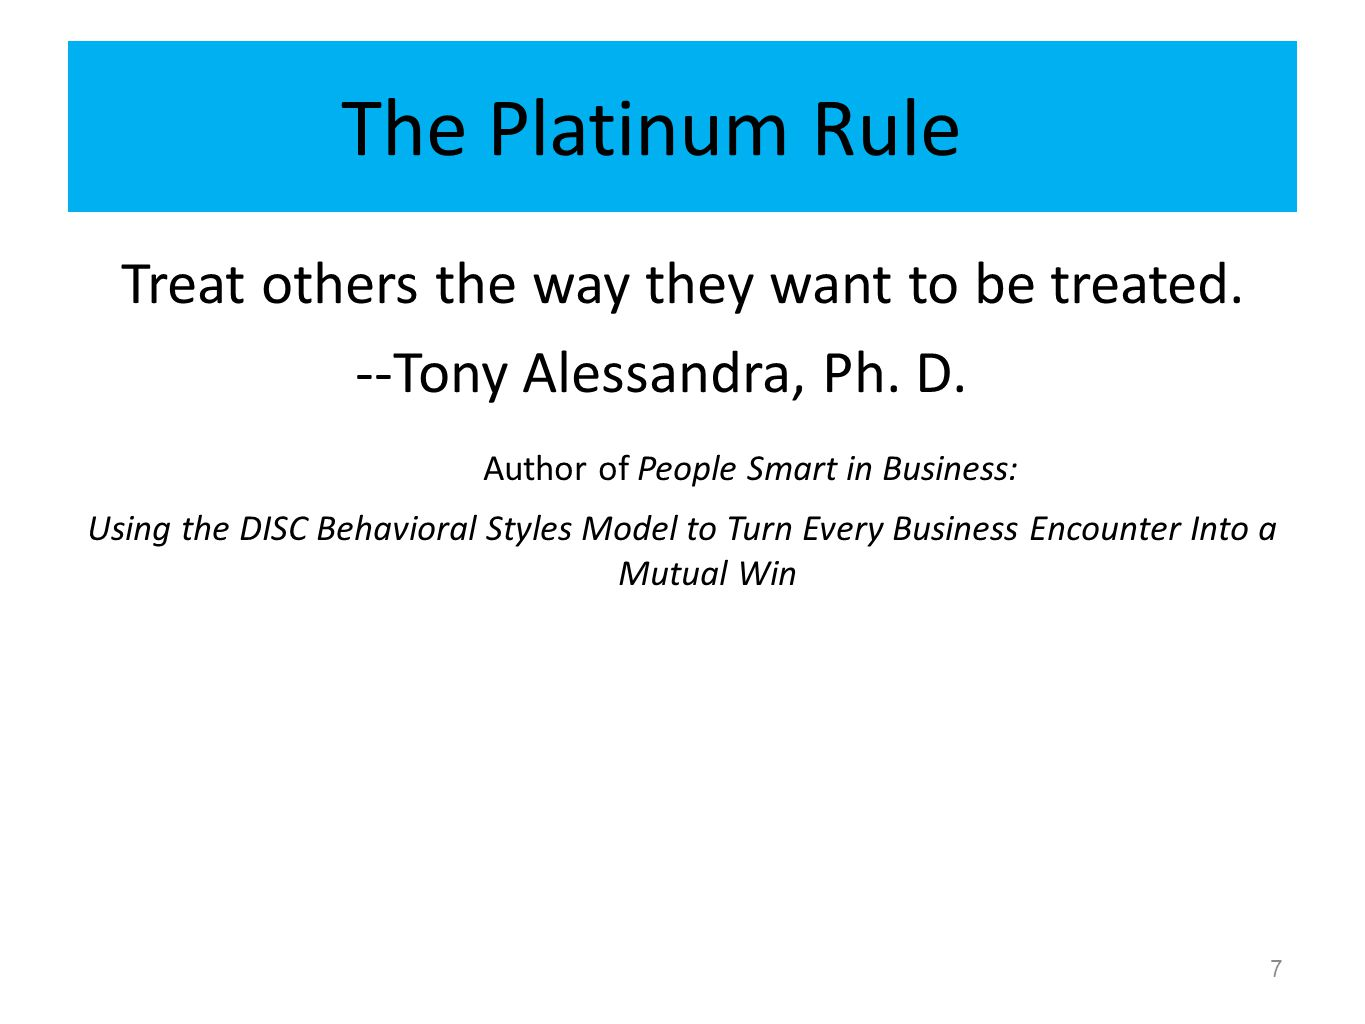 The Platinum Rule Treat others the way they want to be treated.